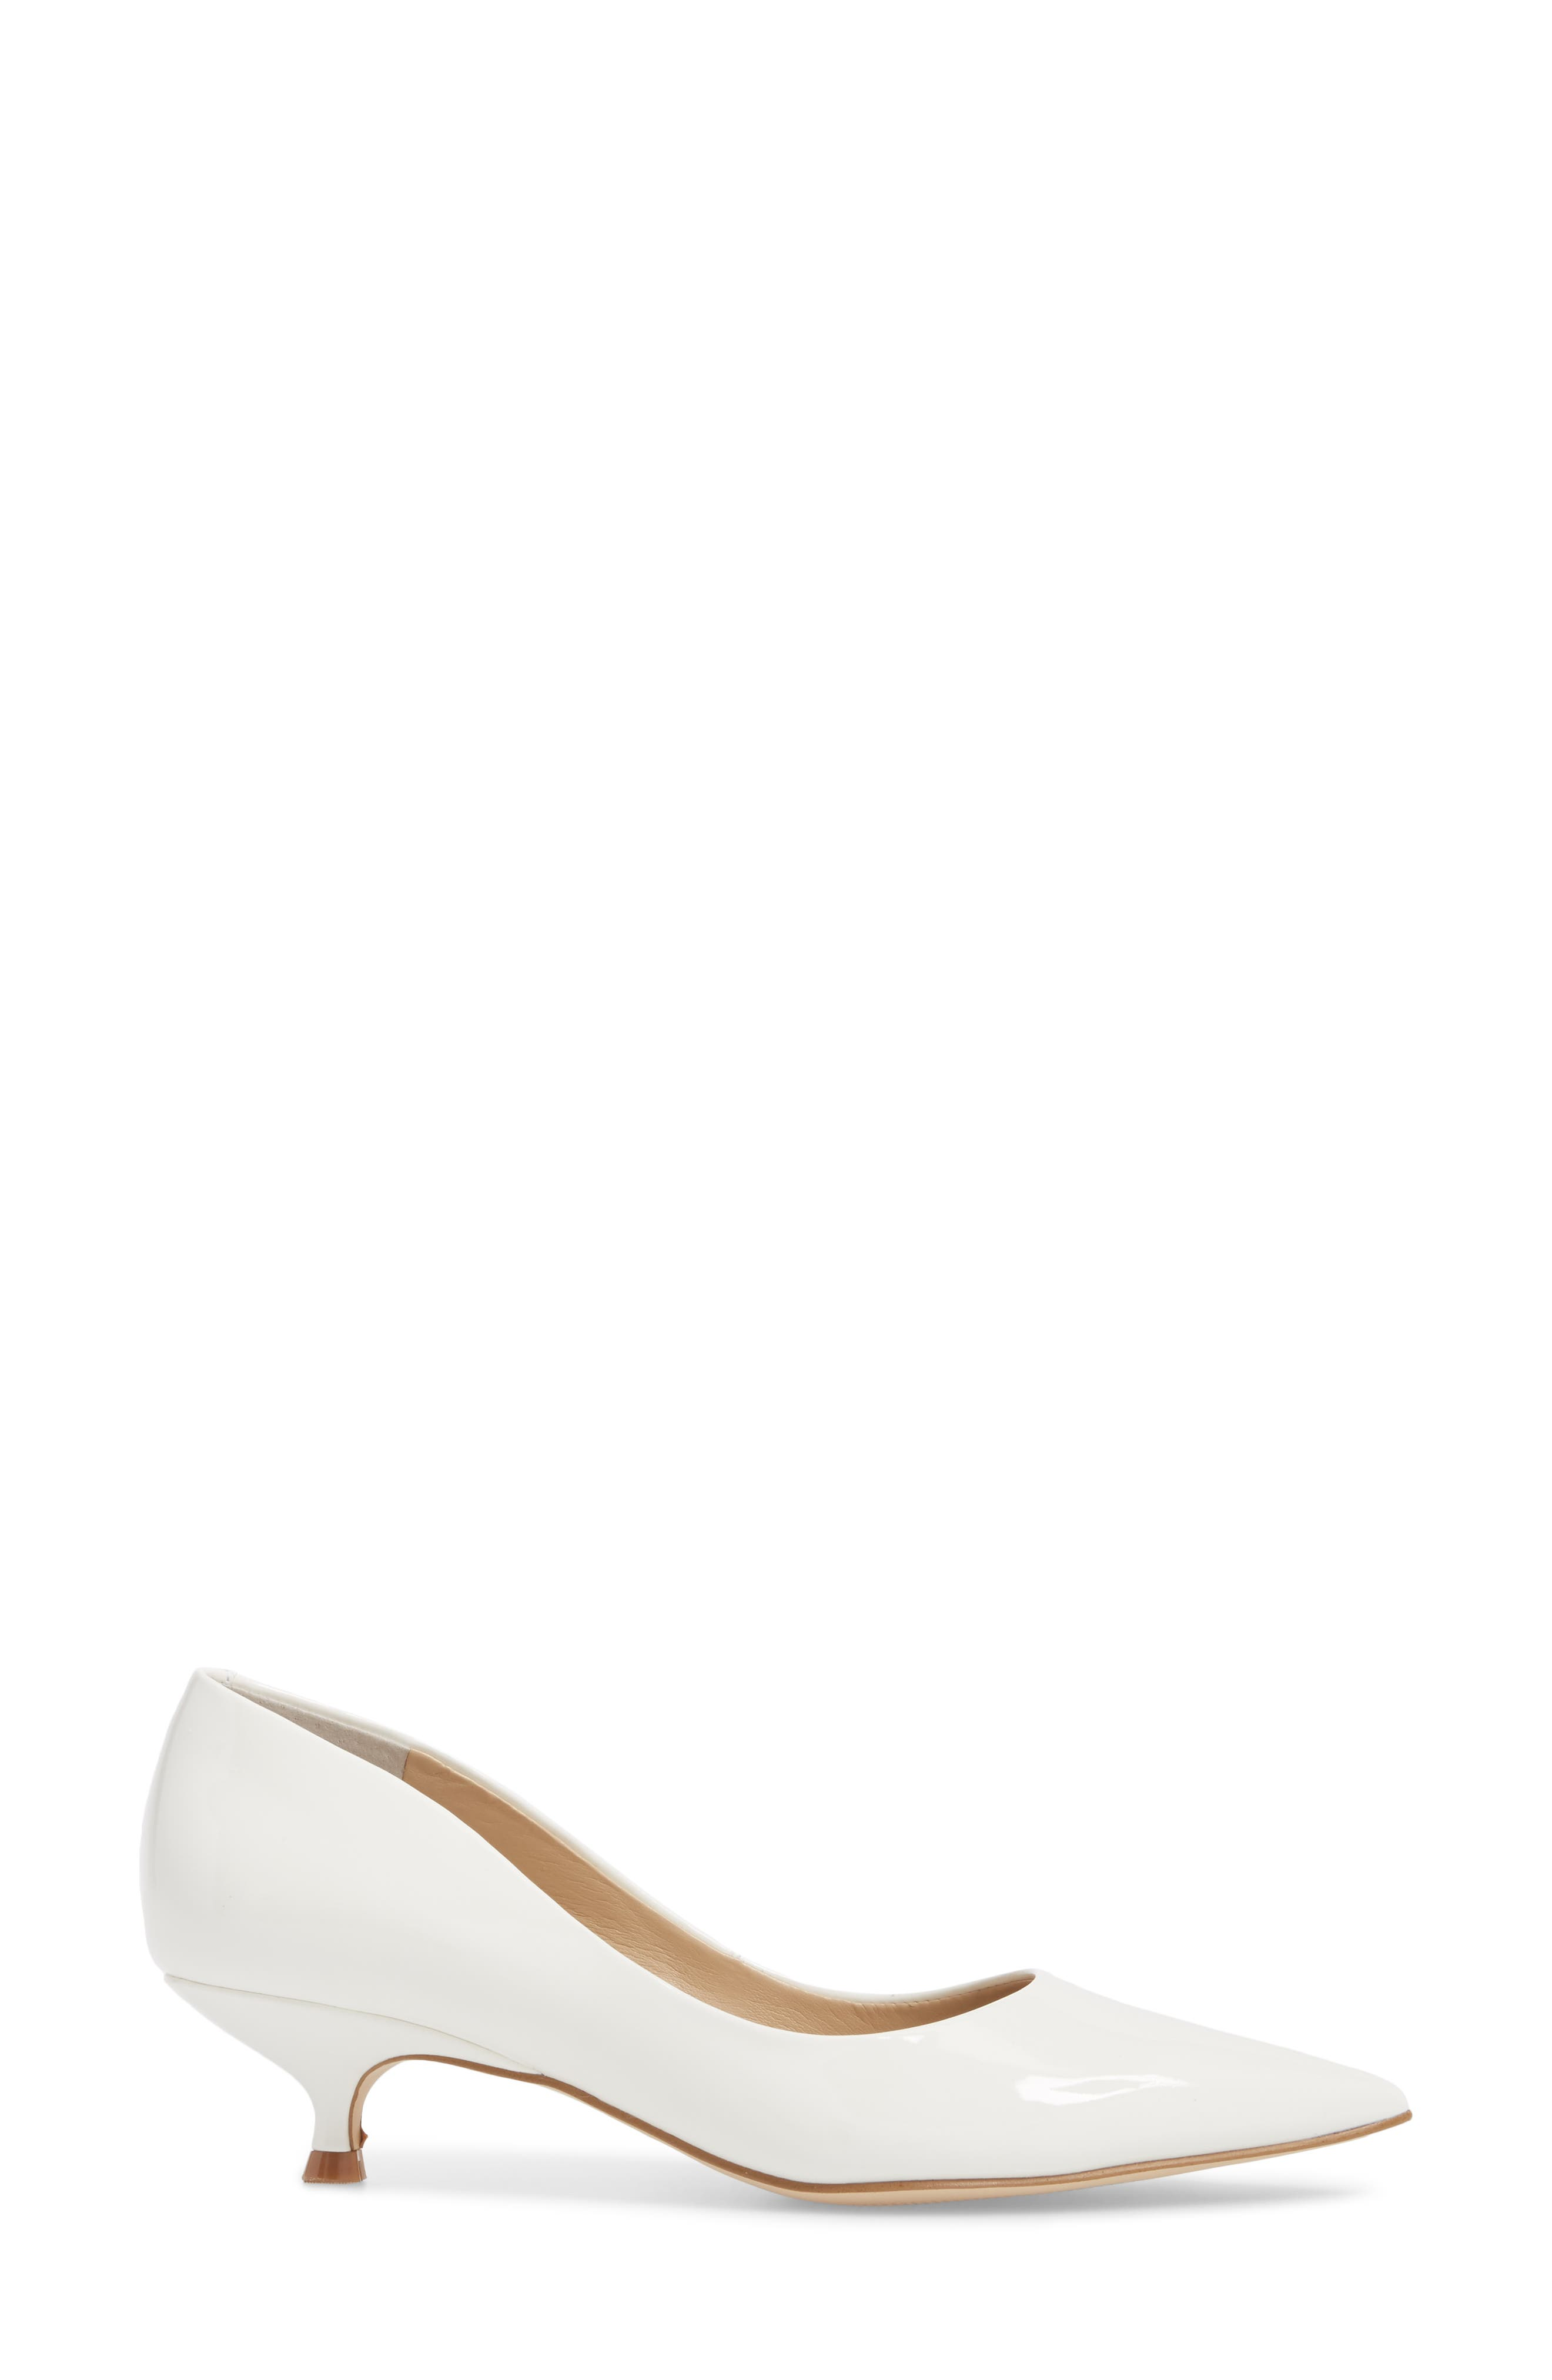 Xanthe Kitten Heel Pump,                             Alternate thumbnail 15, color,